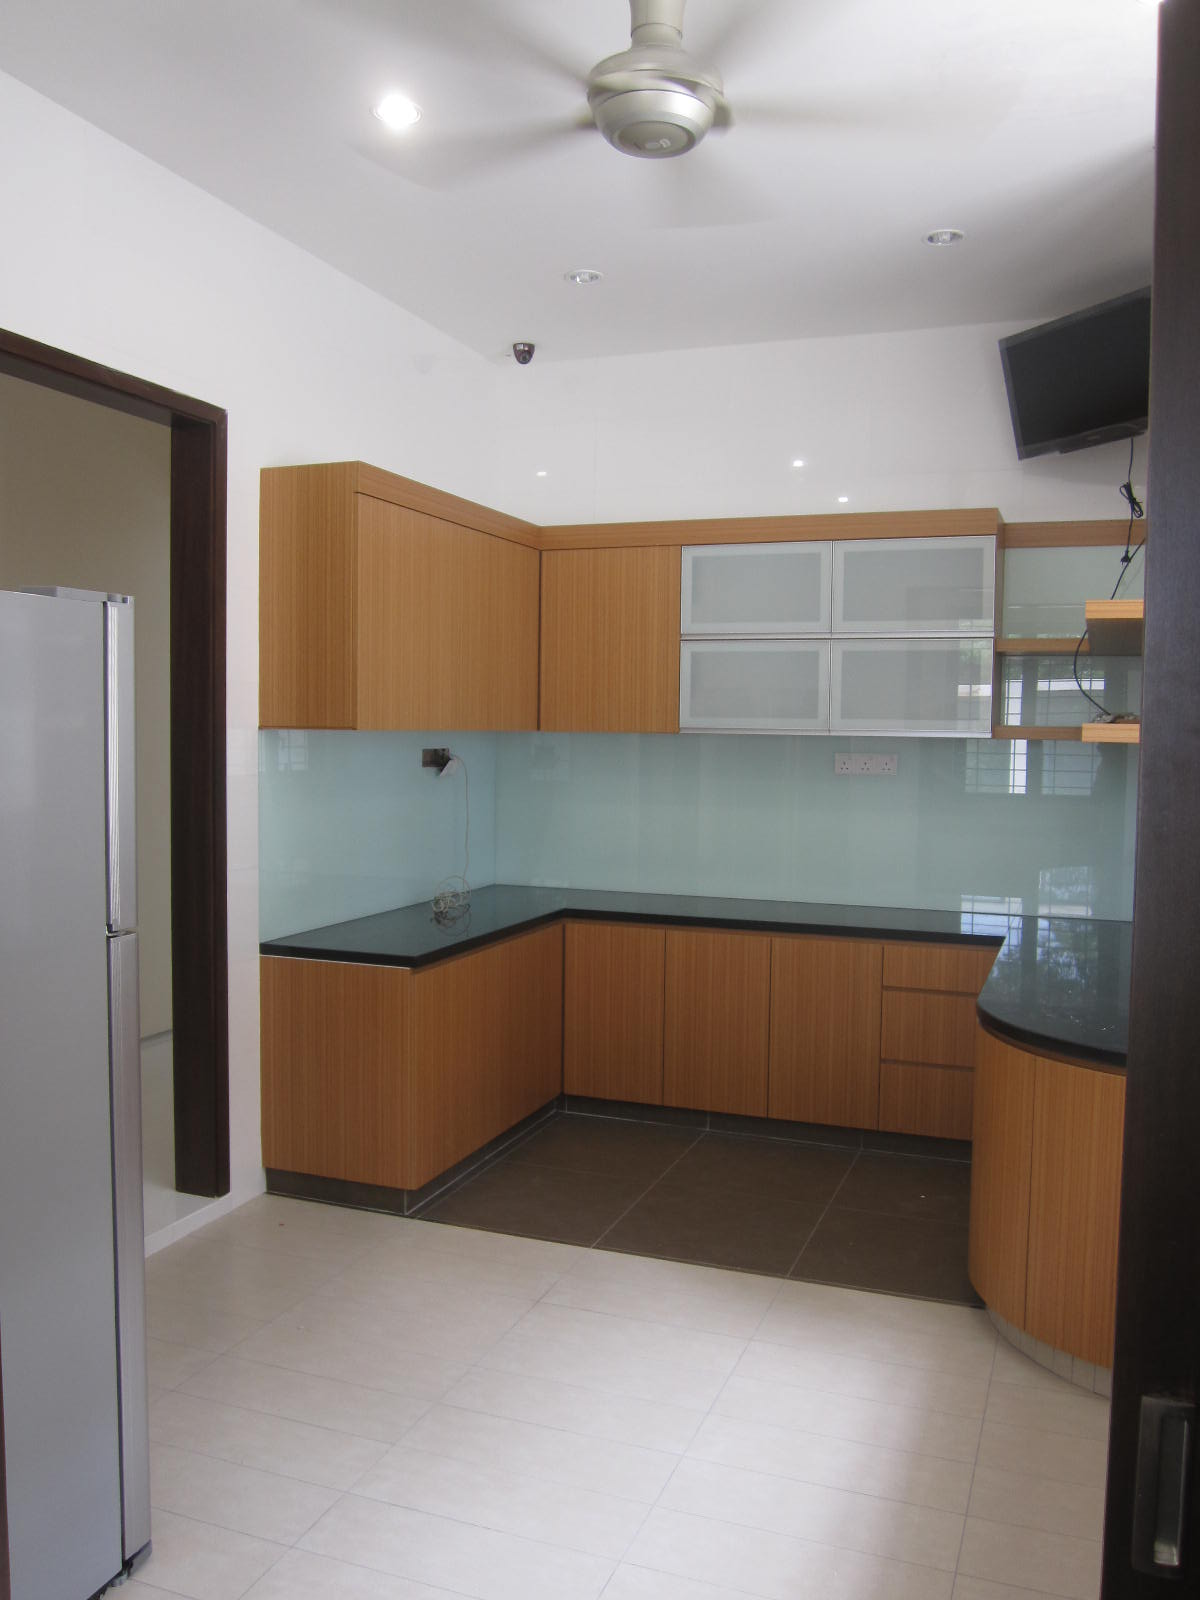 Kitchen Cabinets Online Malaysia Wooden Style Kitchen Cabinet Lky Renovation Works